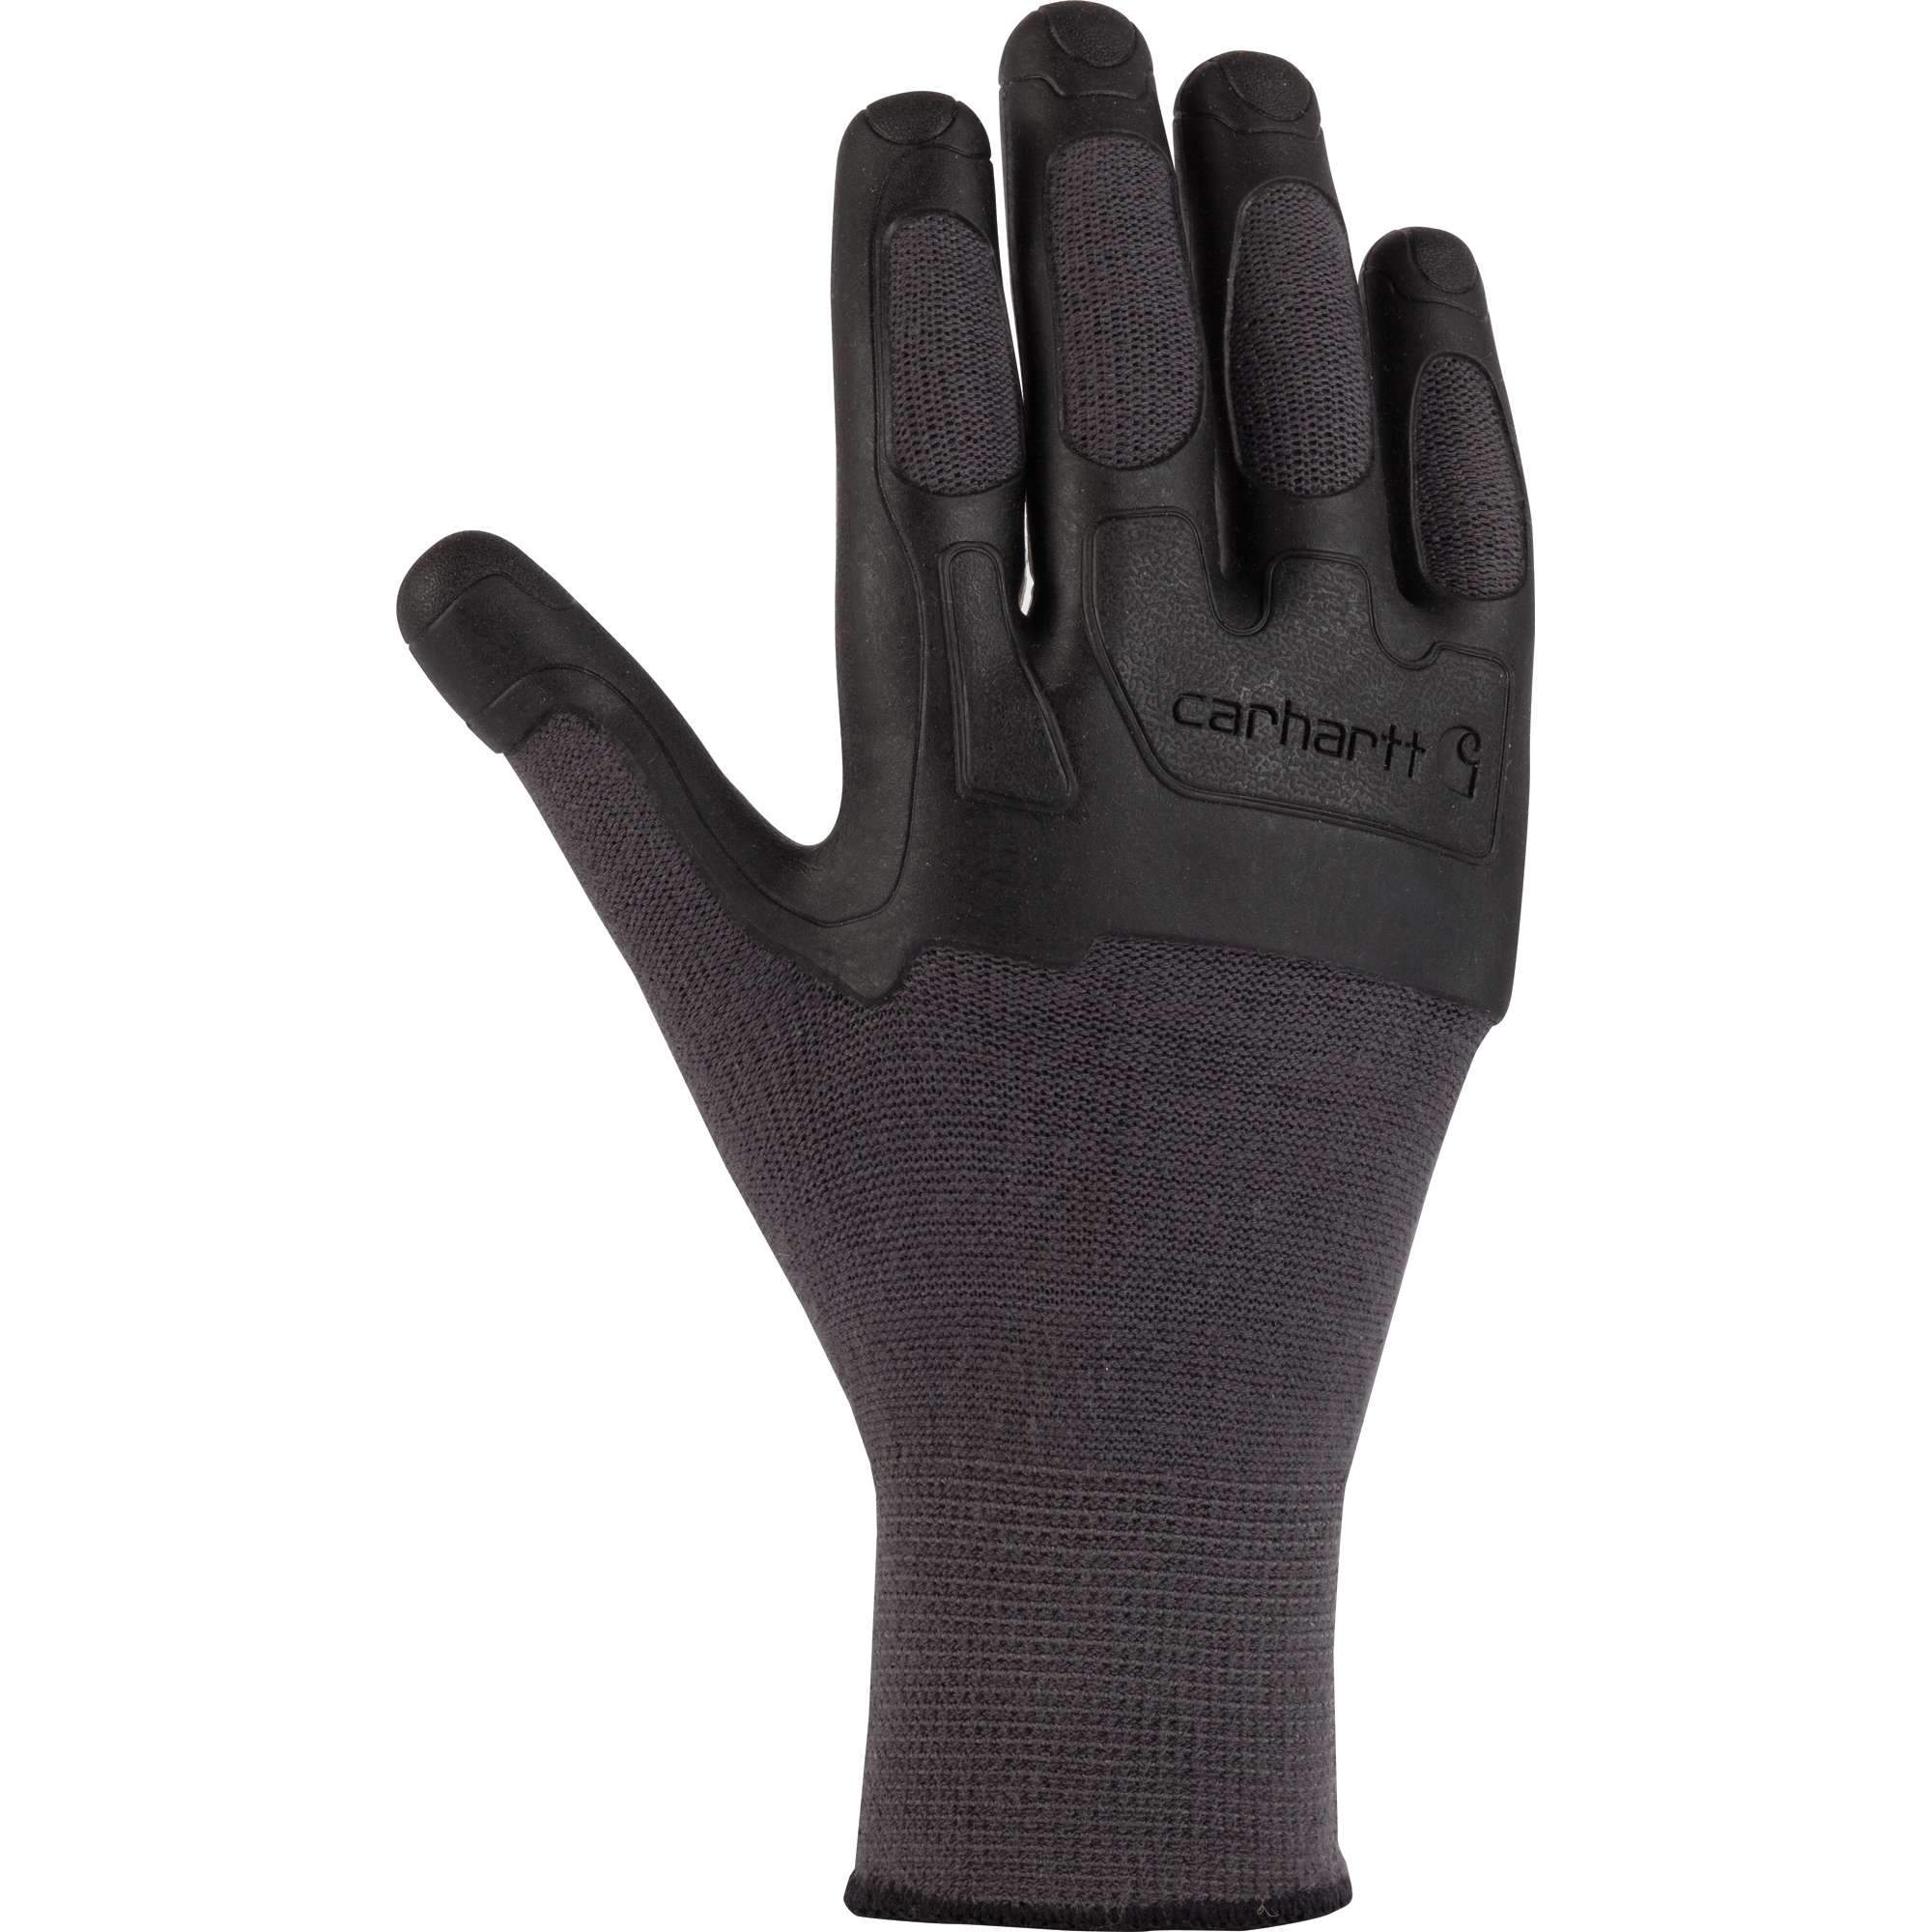 Carhartt C-grip Knuckler Glove